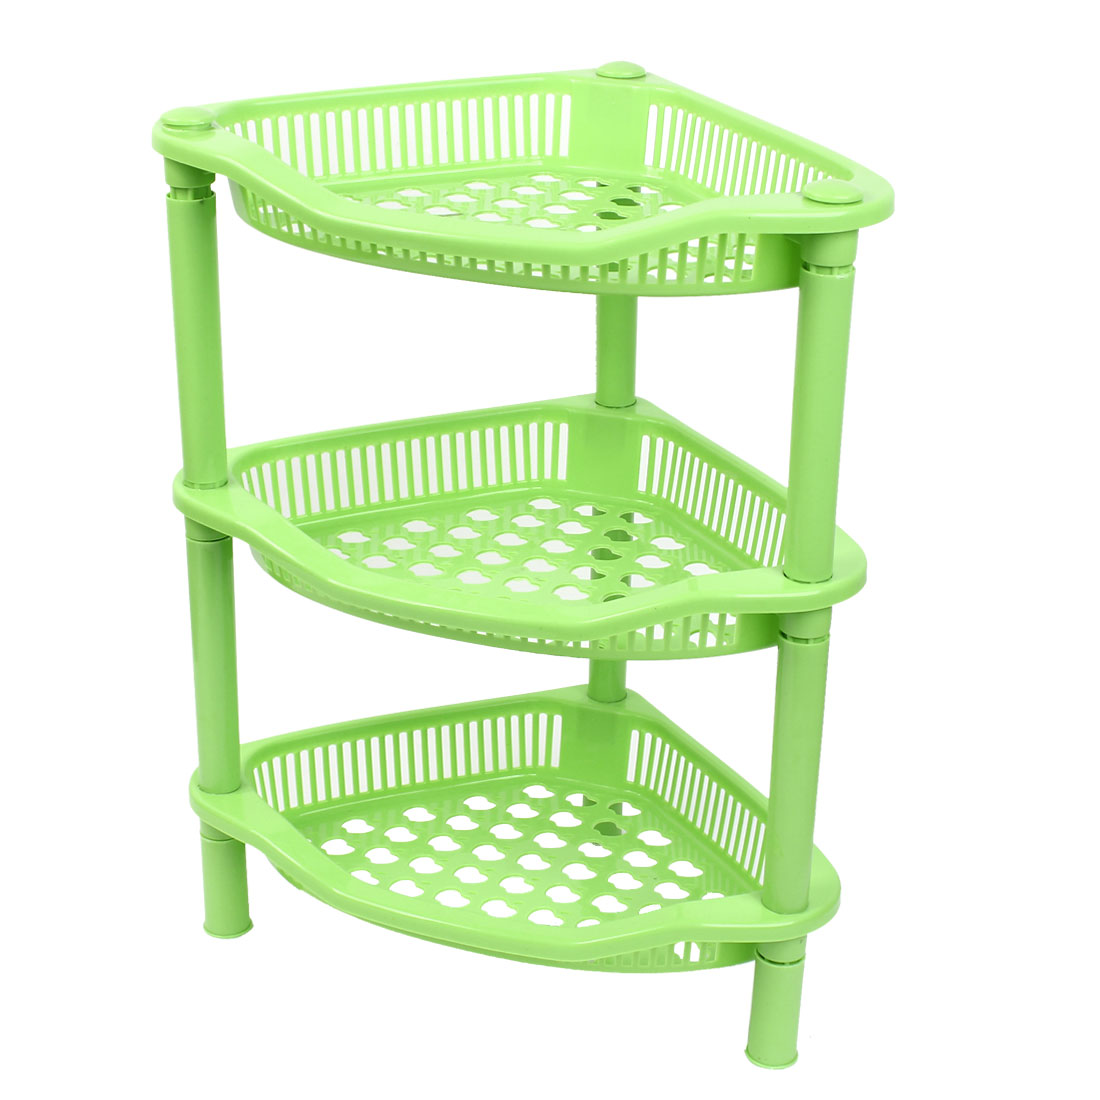 Household Plastic Triangle Shaped 3 Layers Shelf Storage Rack Organizer Green